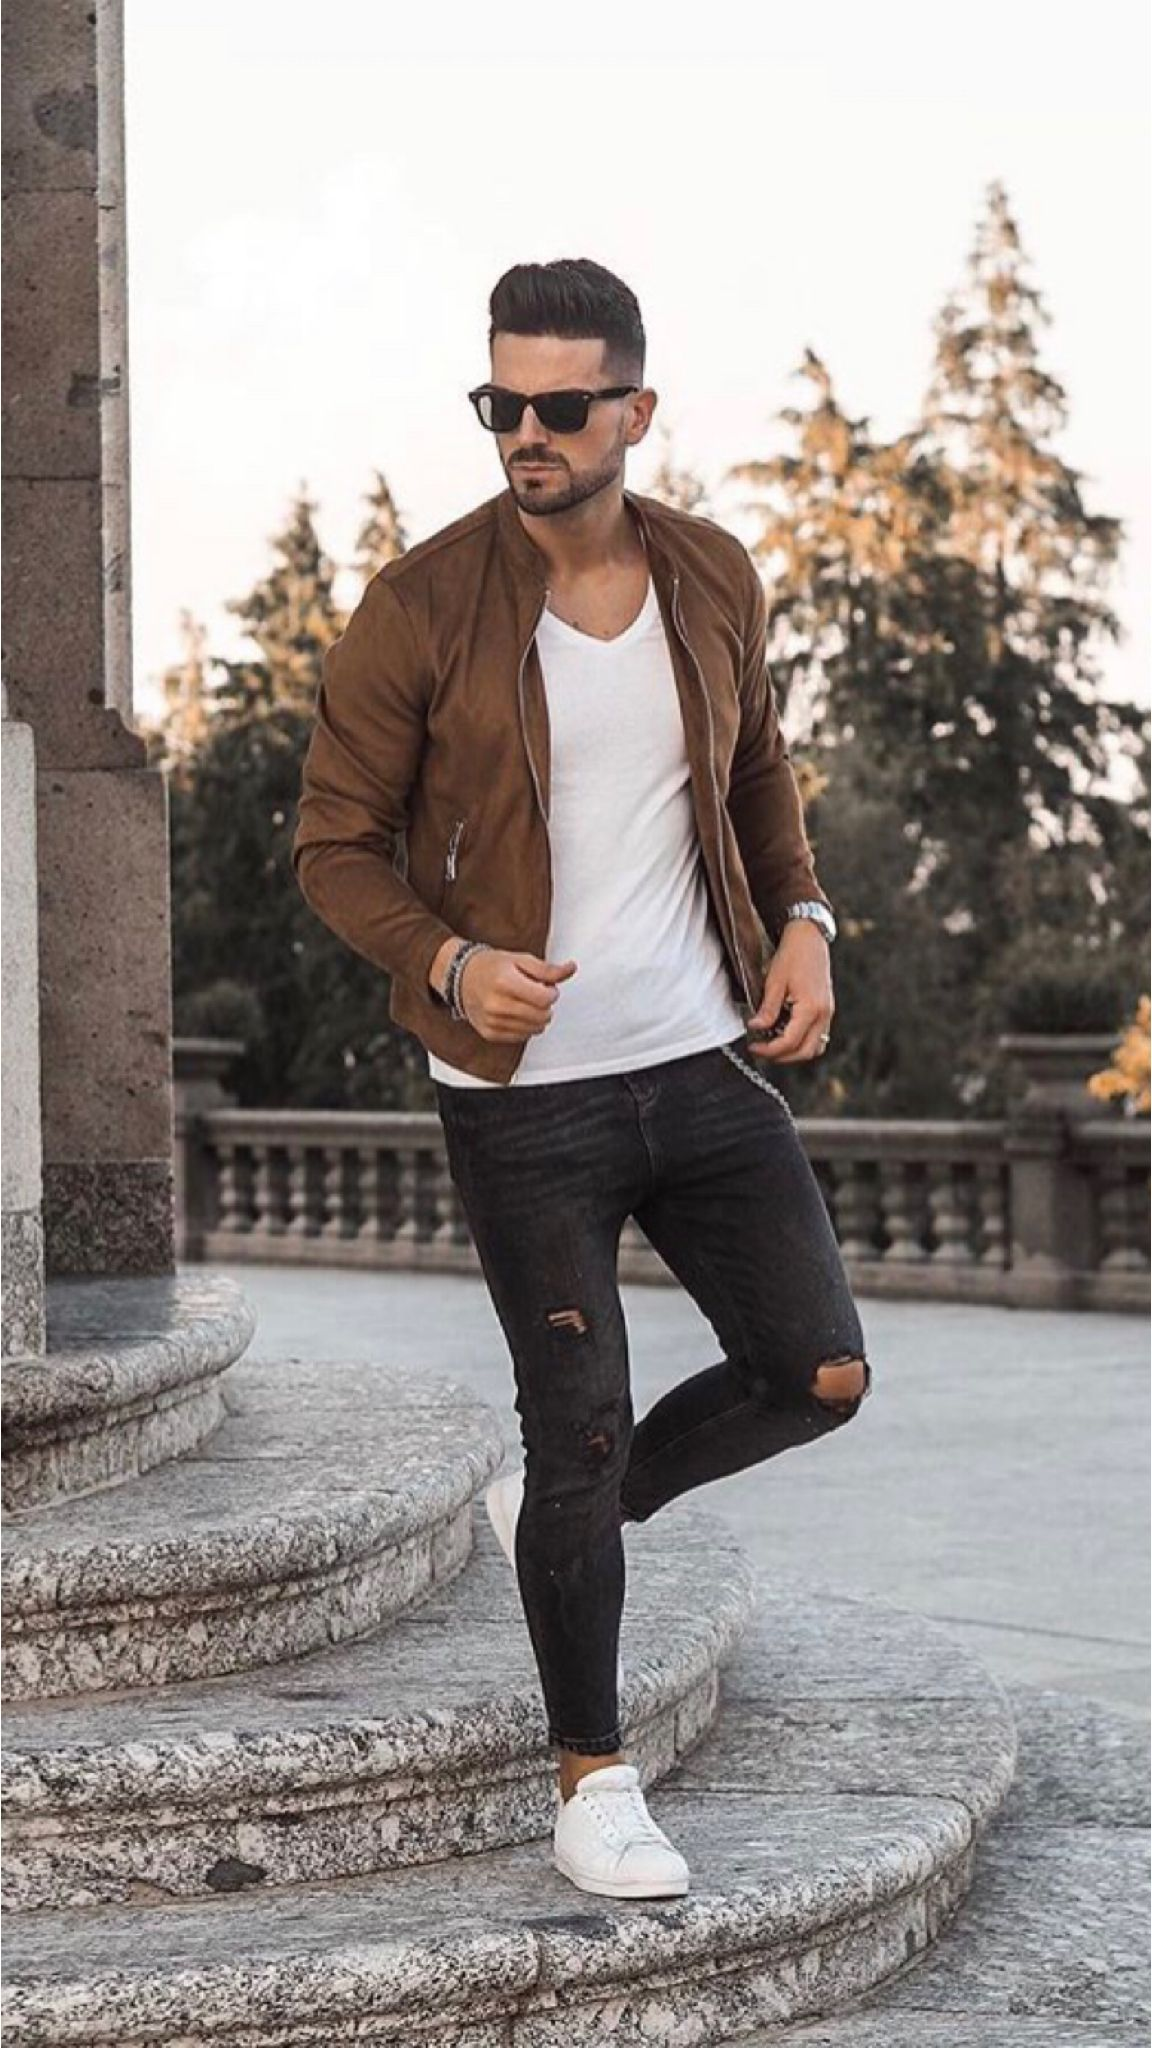 25 Awesome Street Style Outfits Moda Hombre Invierno Ropa Para Hombres Jovenes Moda Casual Hombre